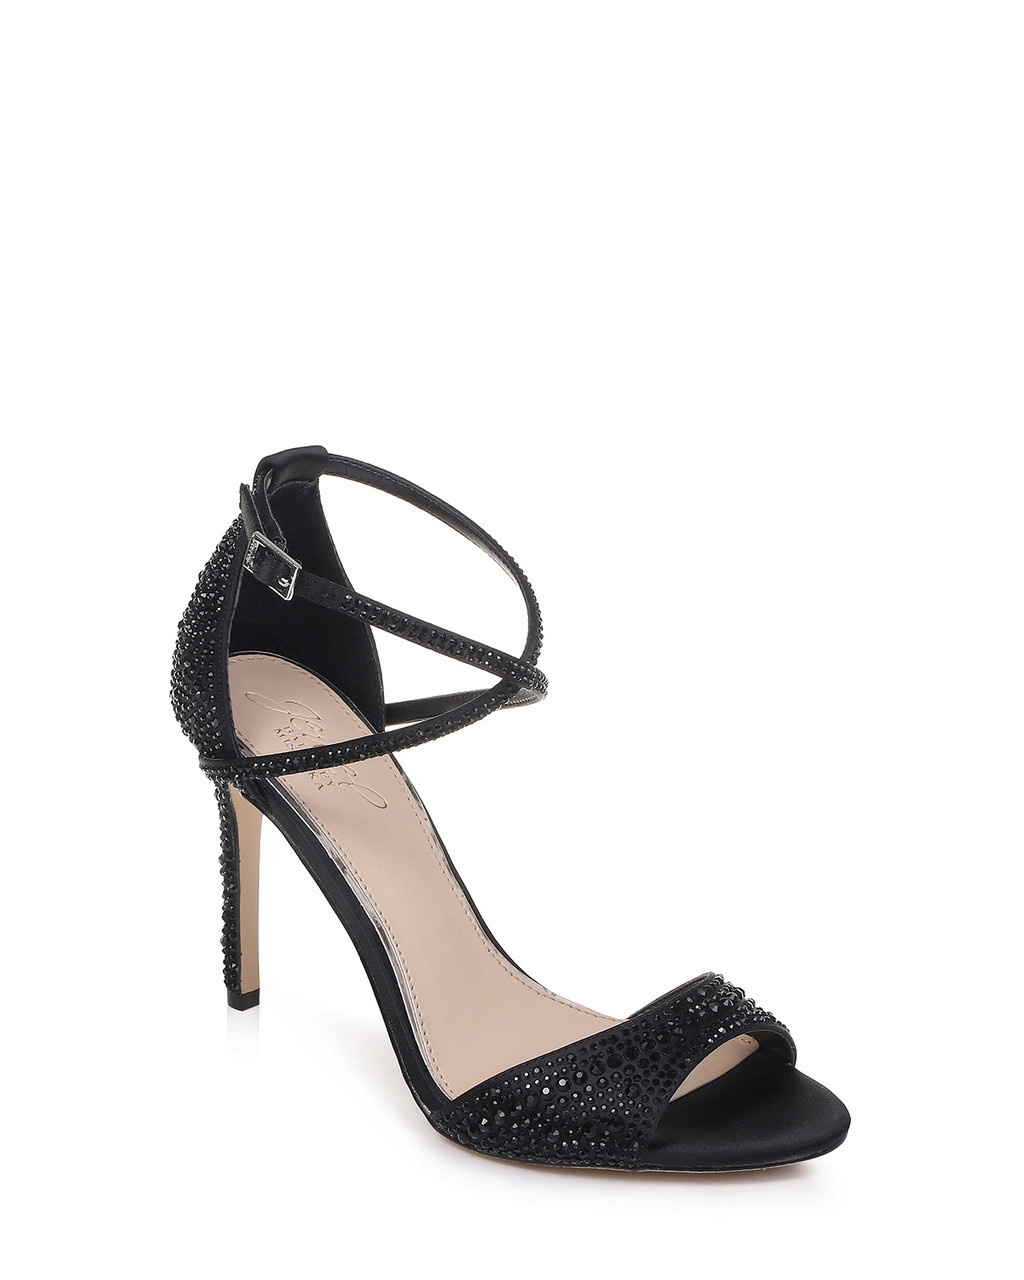 Dillon Strappy Embellished Evening Shoe from Jewel by Badgley Mischka